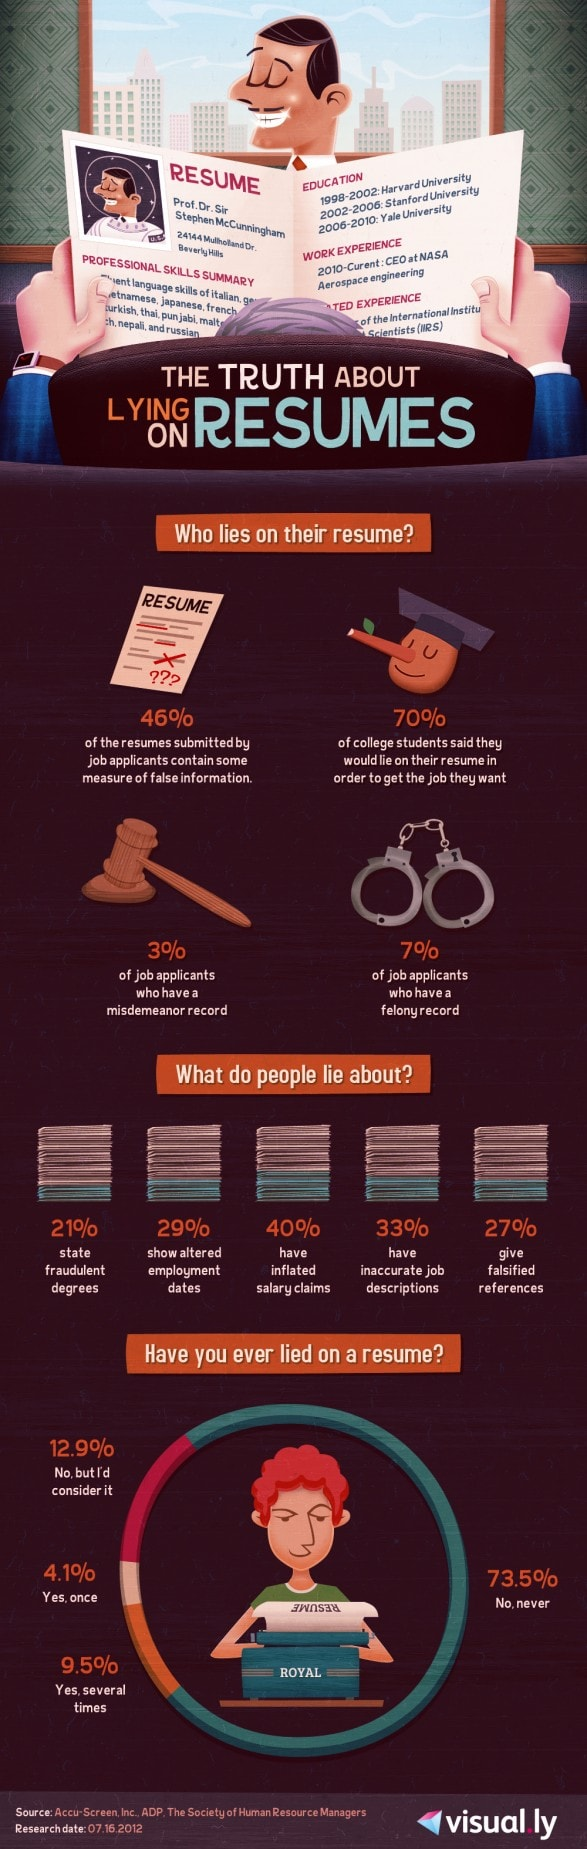 Lying on Resumes Infographic